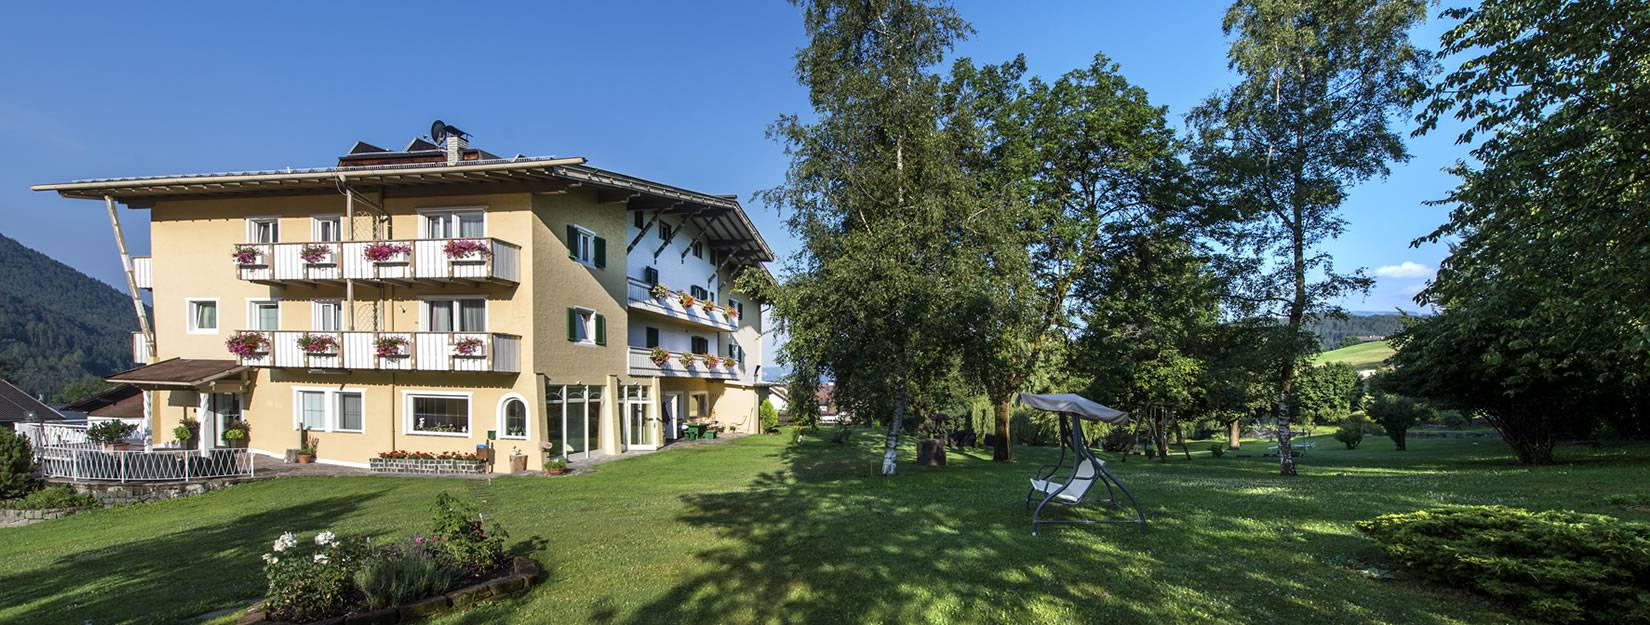 Data privacy at the Parc Hotel in Siusi/Seis